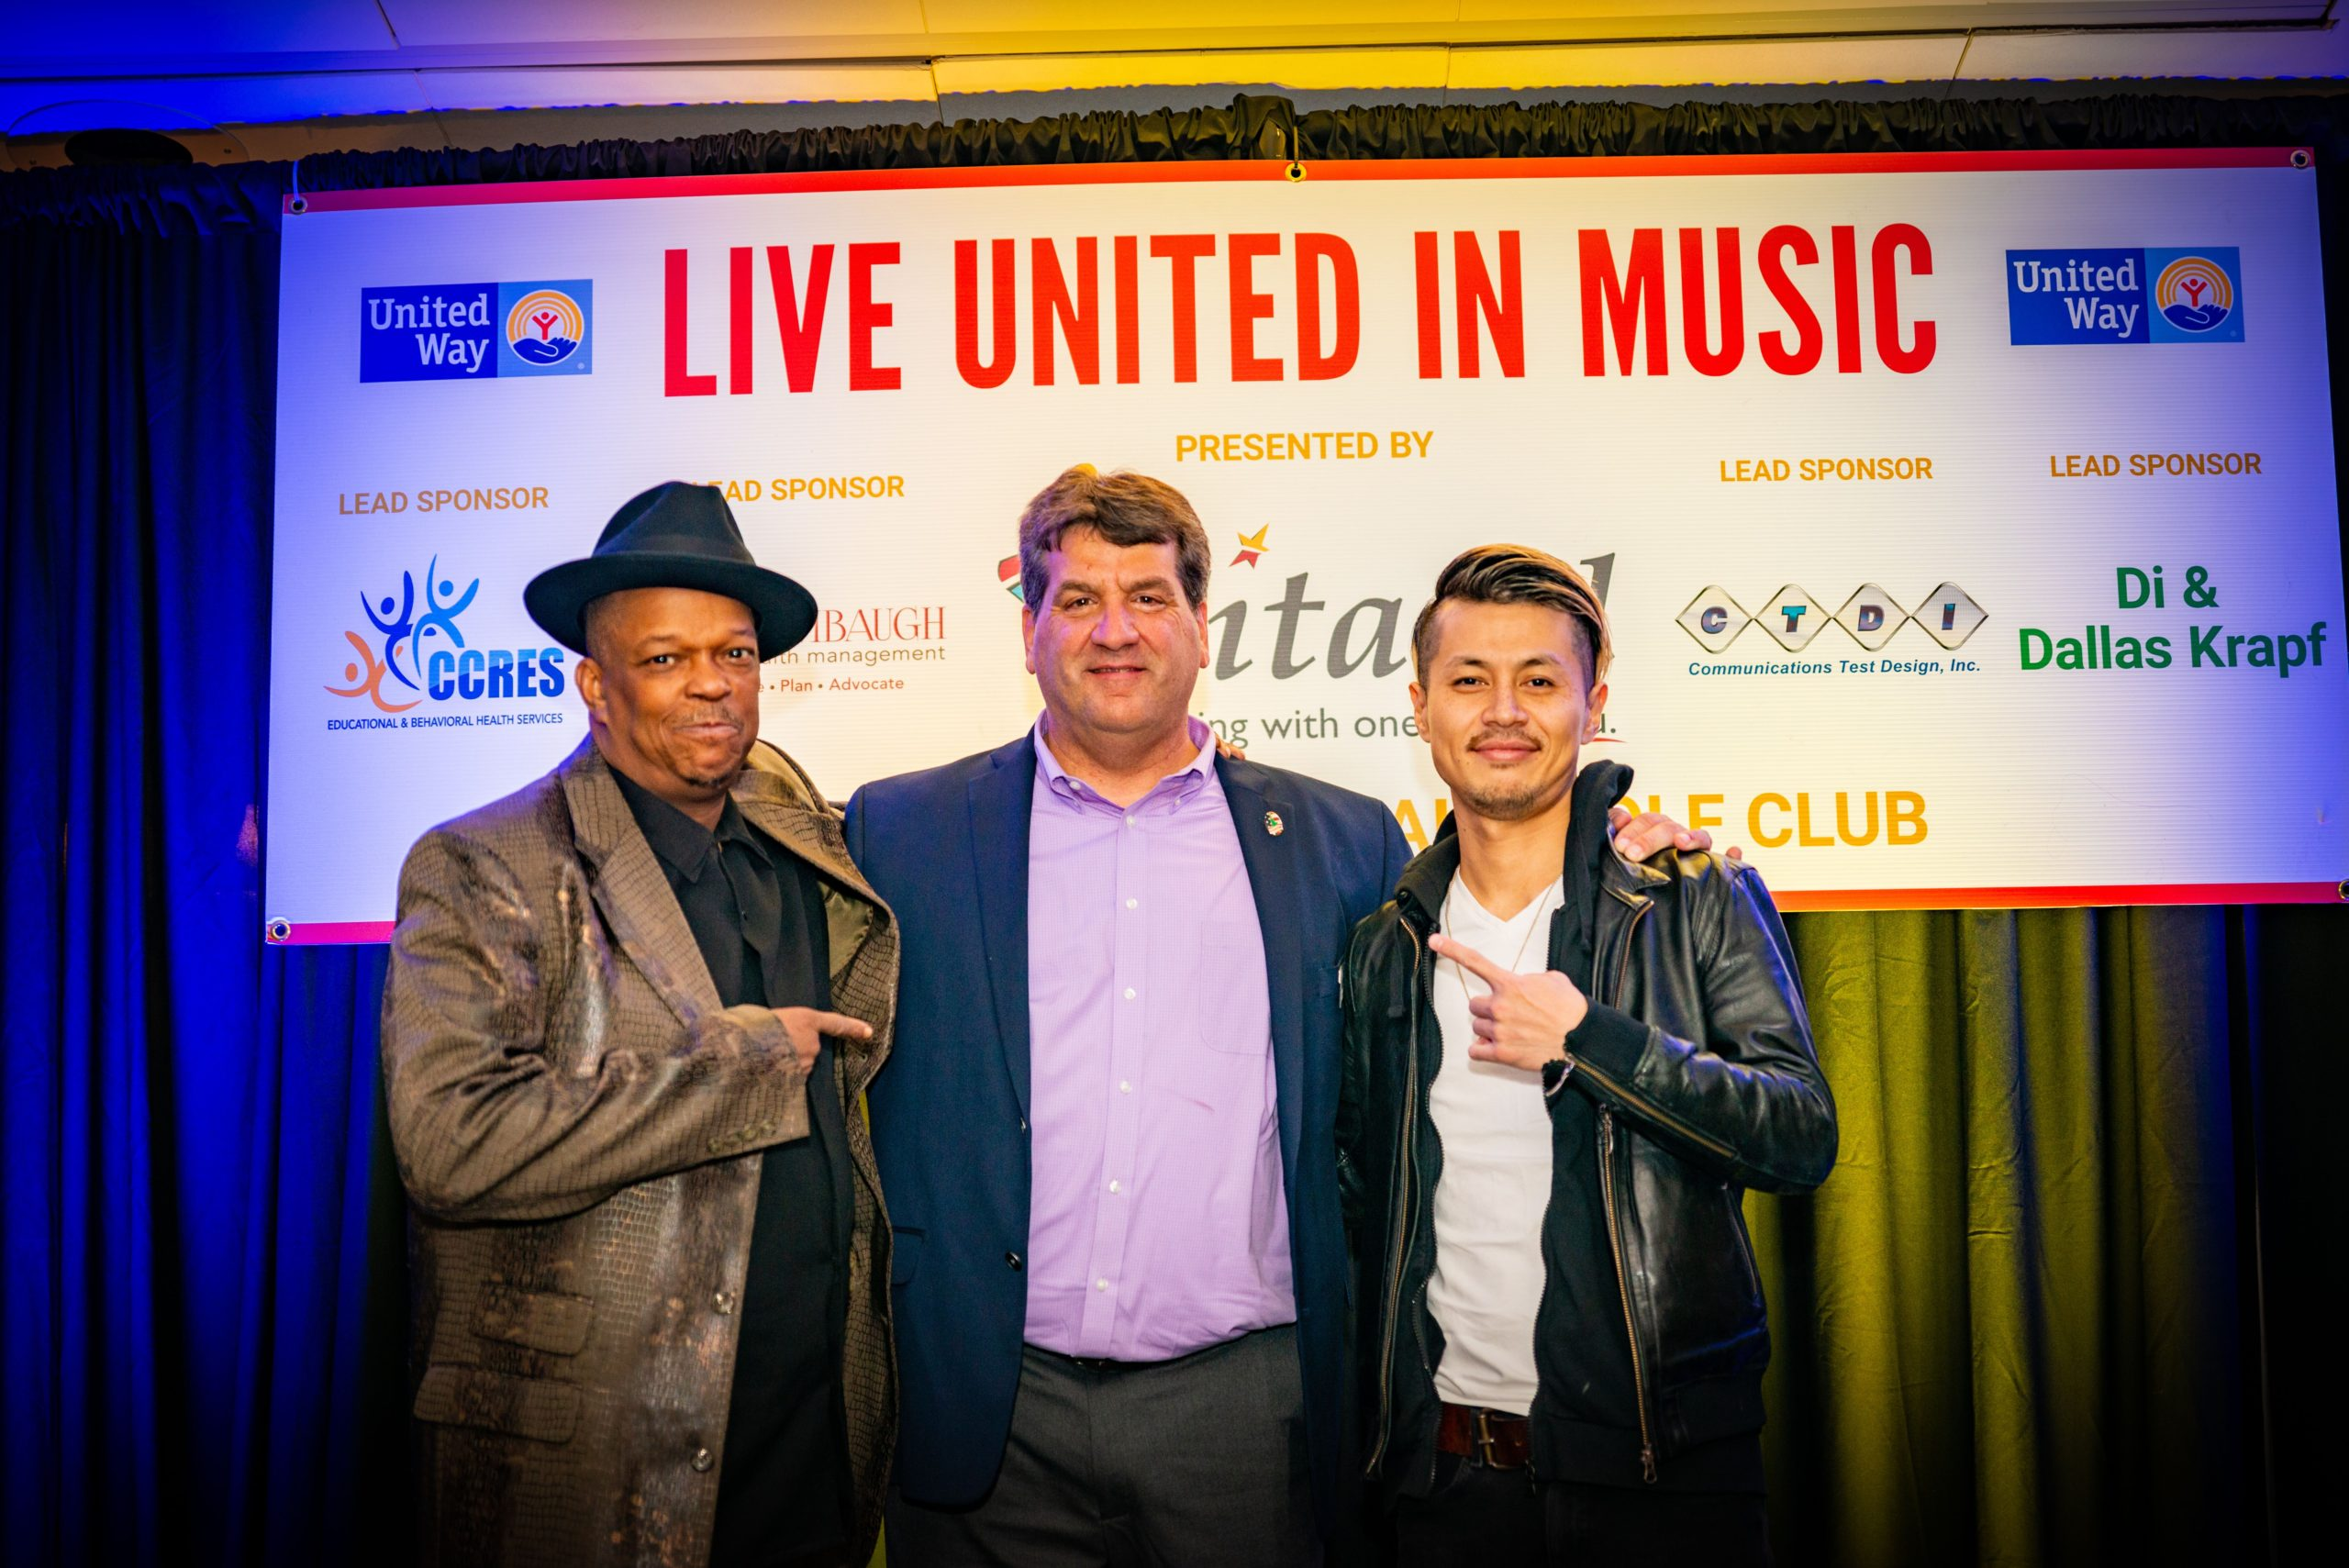 United Way's Live United in Music Raises Funds for Financial Stability Center